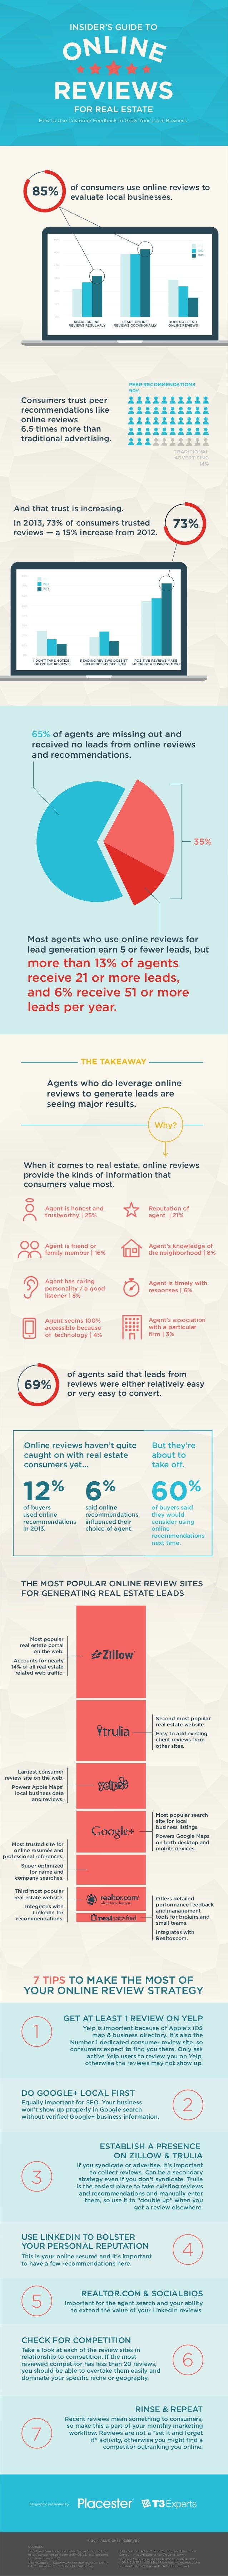 INSIDER'S GUIDE TO  ONLINE  REVIEWS  FOR REAL ESTATE  How to Use Customer Feedback to Grow Your Local Business  85%  60%  ...